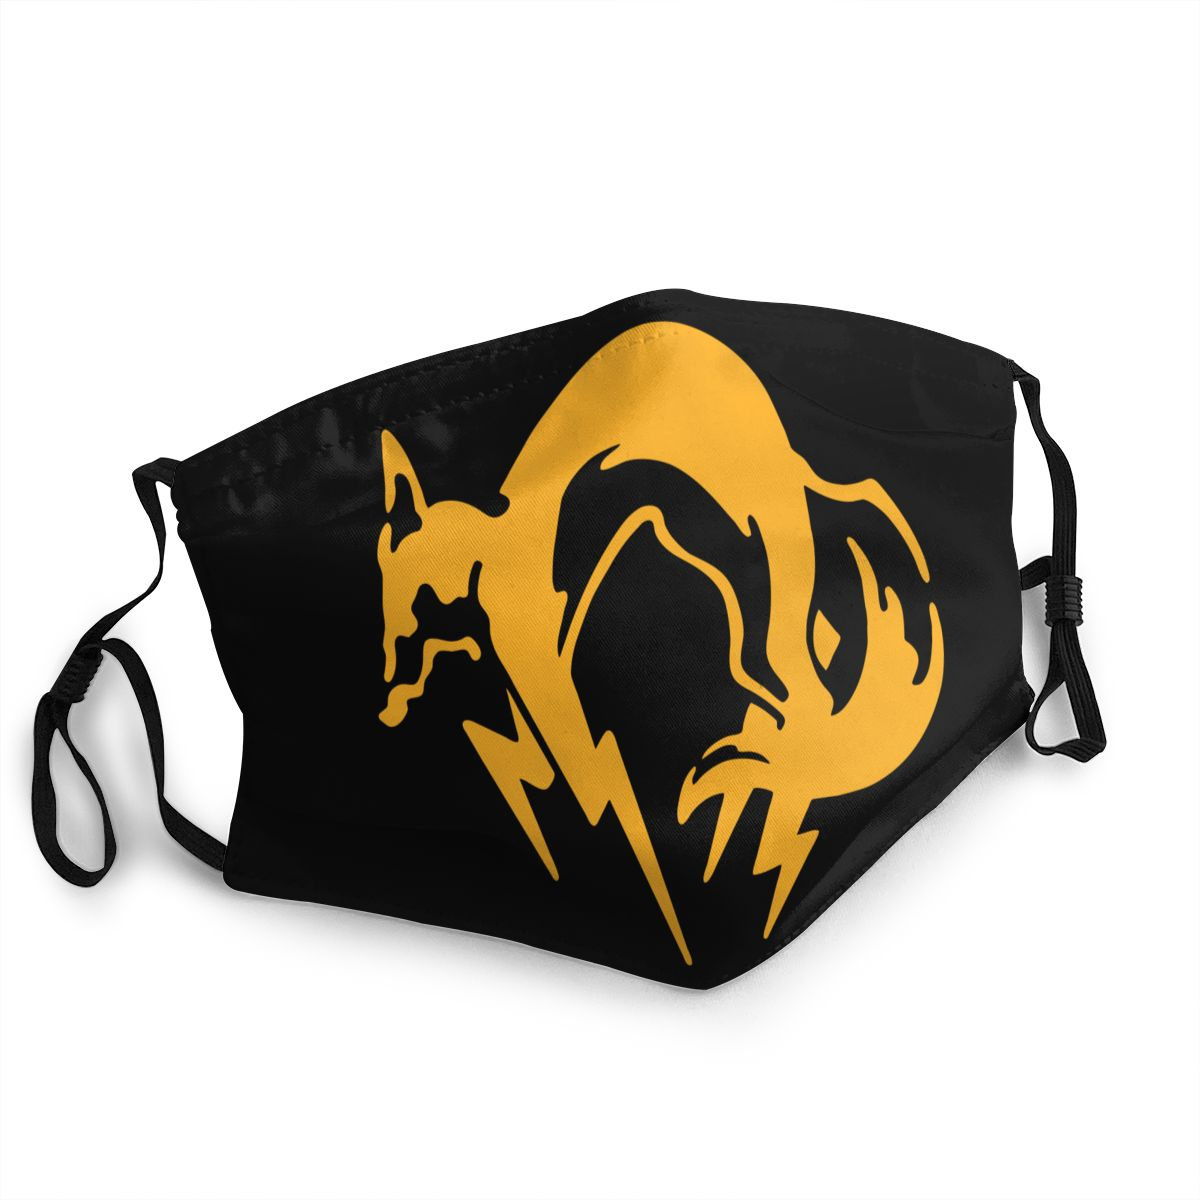 Metal Gear Solid FOX Non-Disposable Face Mask MGS Anti Bacterial Dustproof Mask Protection Cover Respirator Mouth Muffle